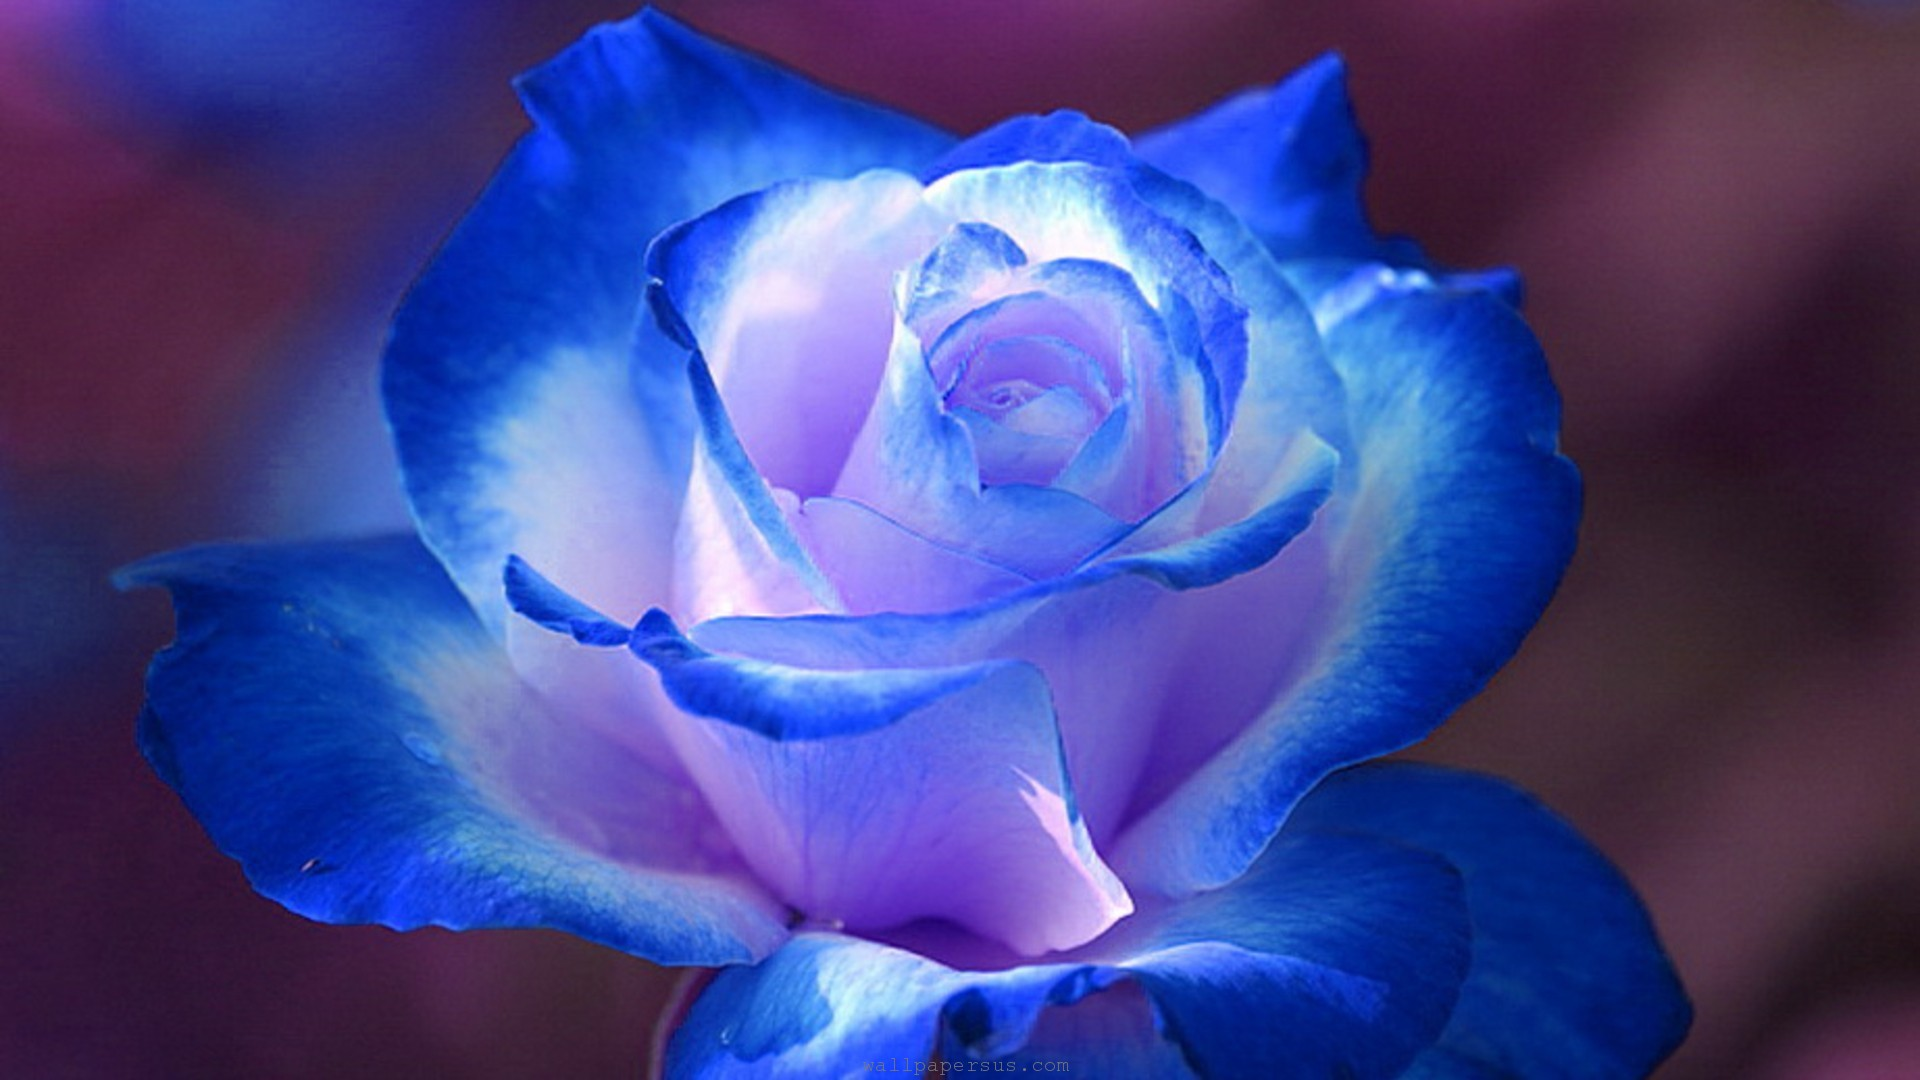 Blue Rose Hd Wallpaper Hd Latest Wallpapers